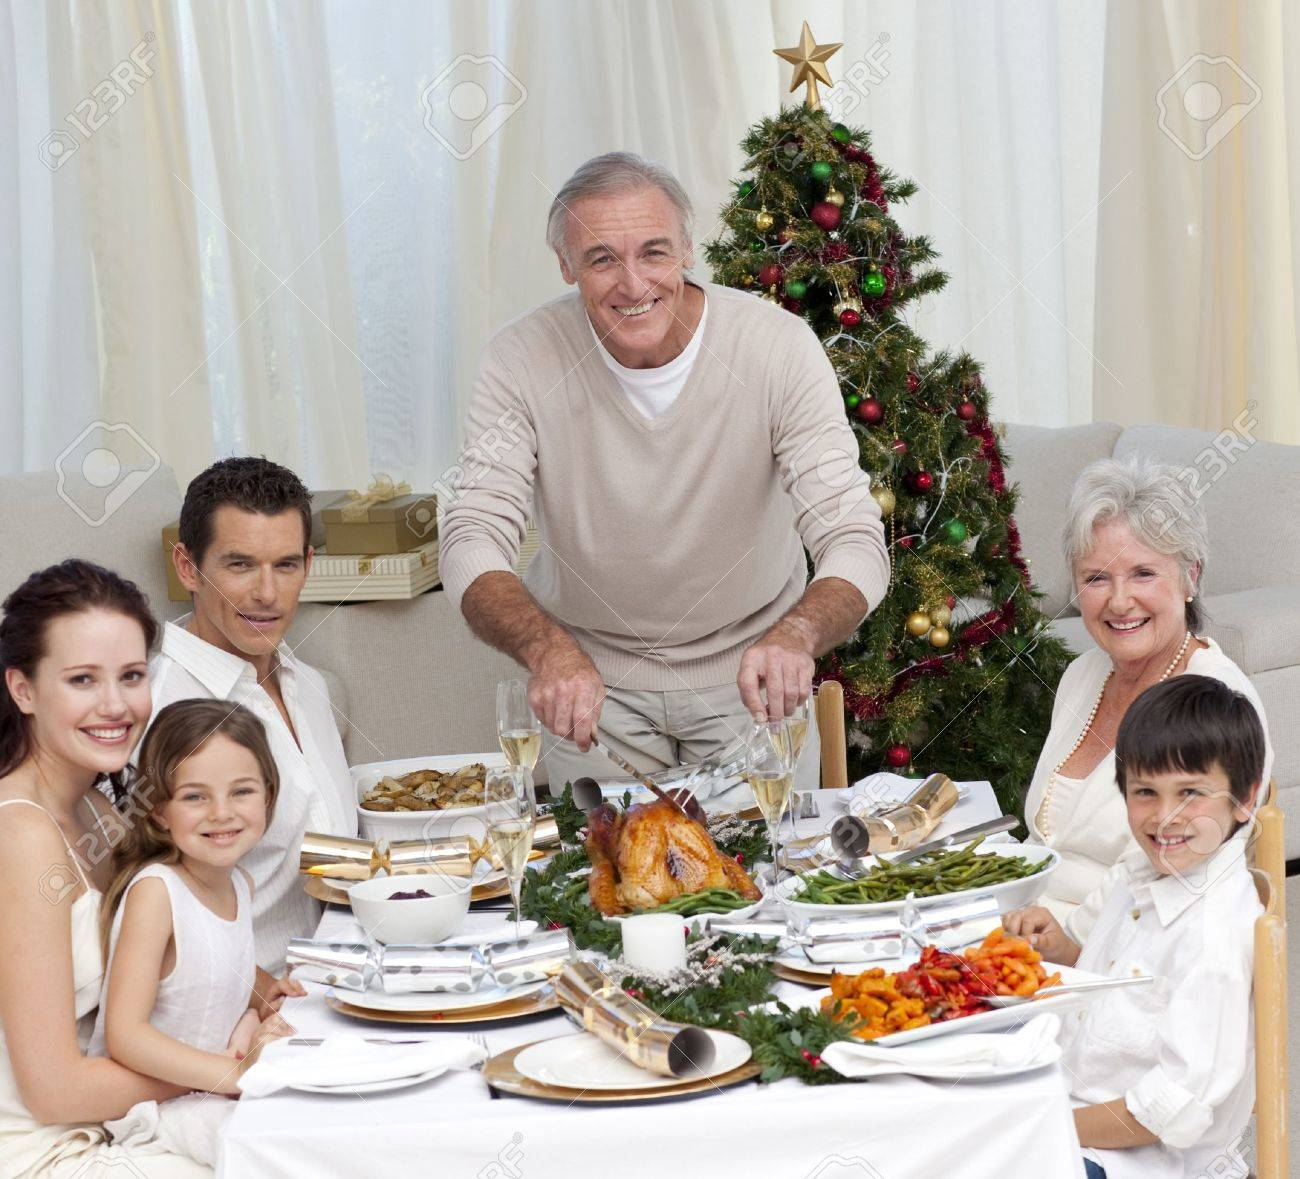 Grandfather cutting turkey for Christmas dinner Stock Photo - 10259549